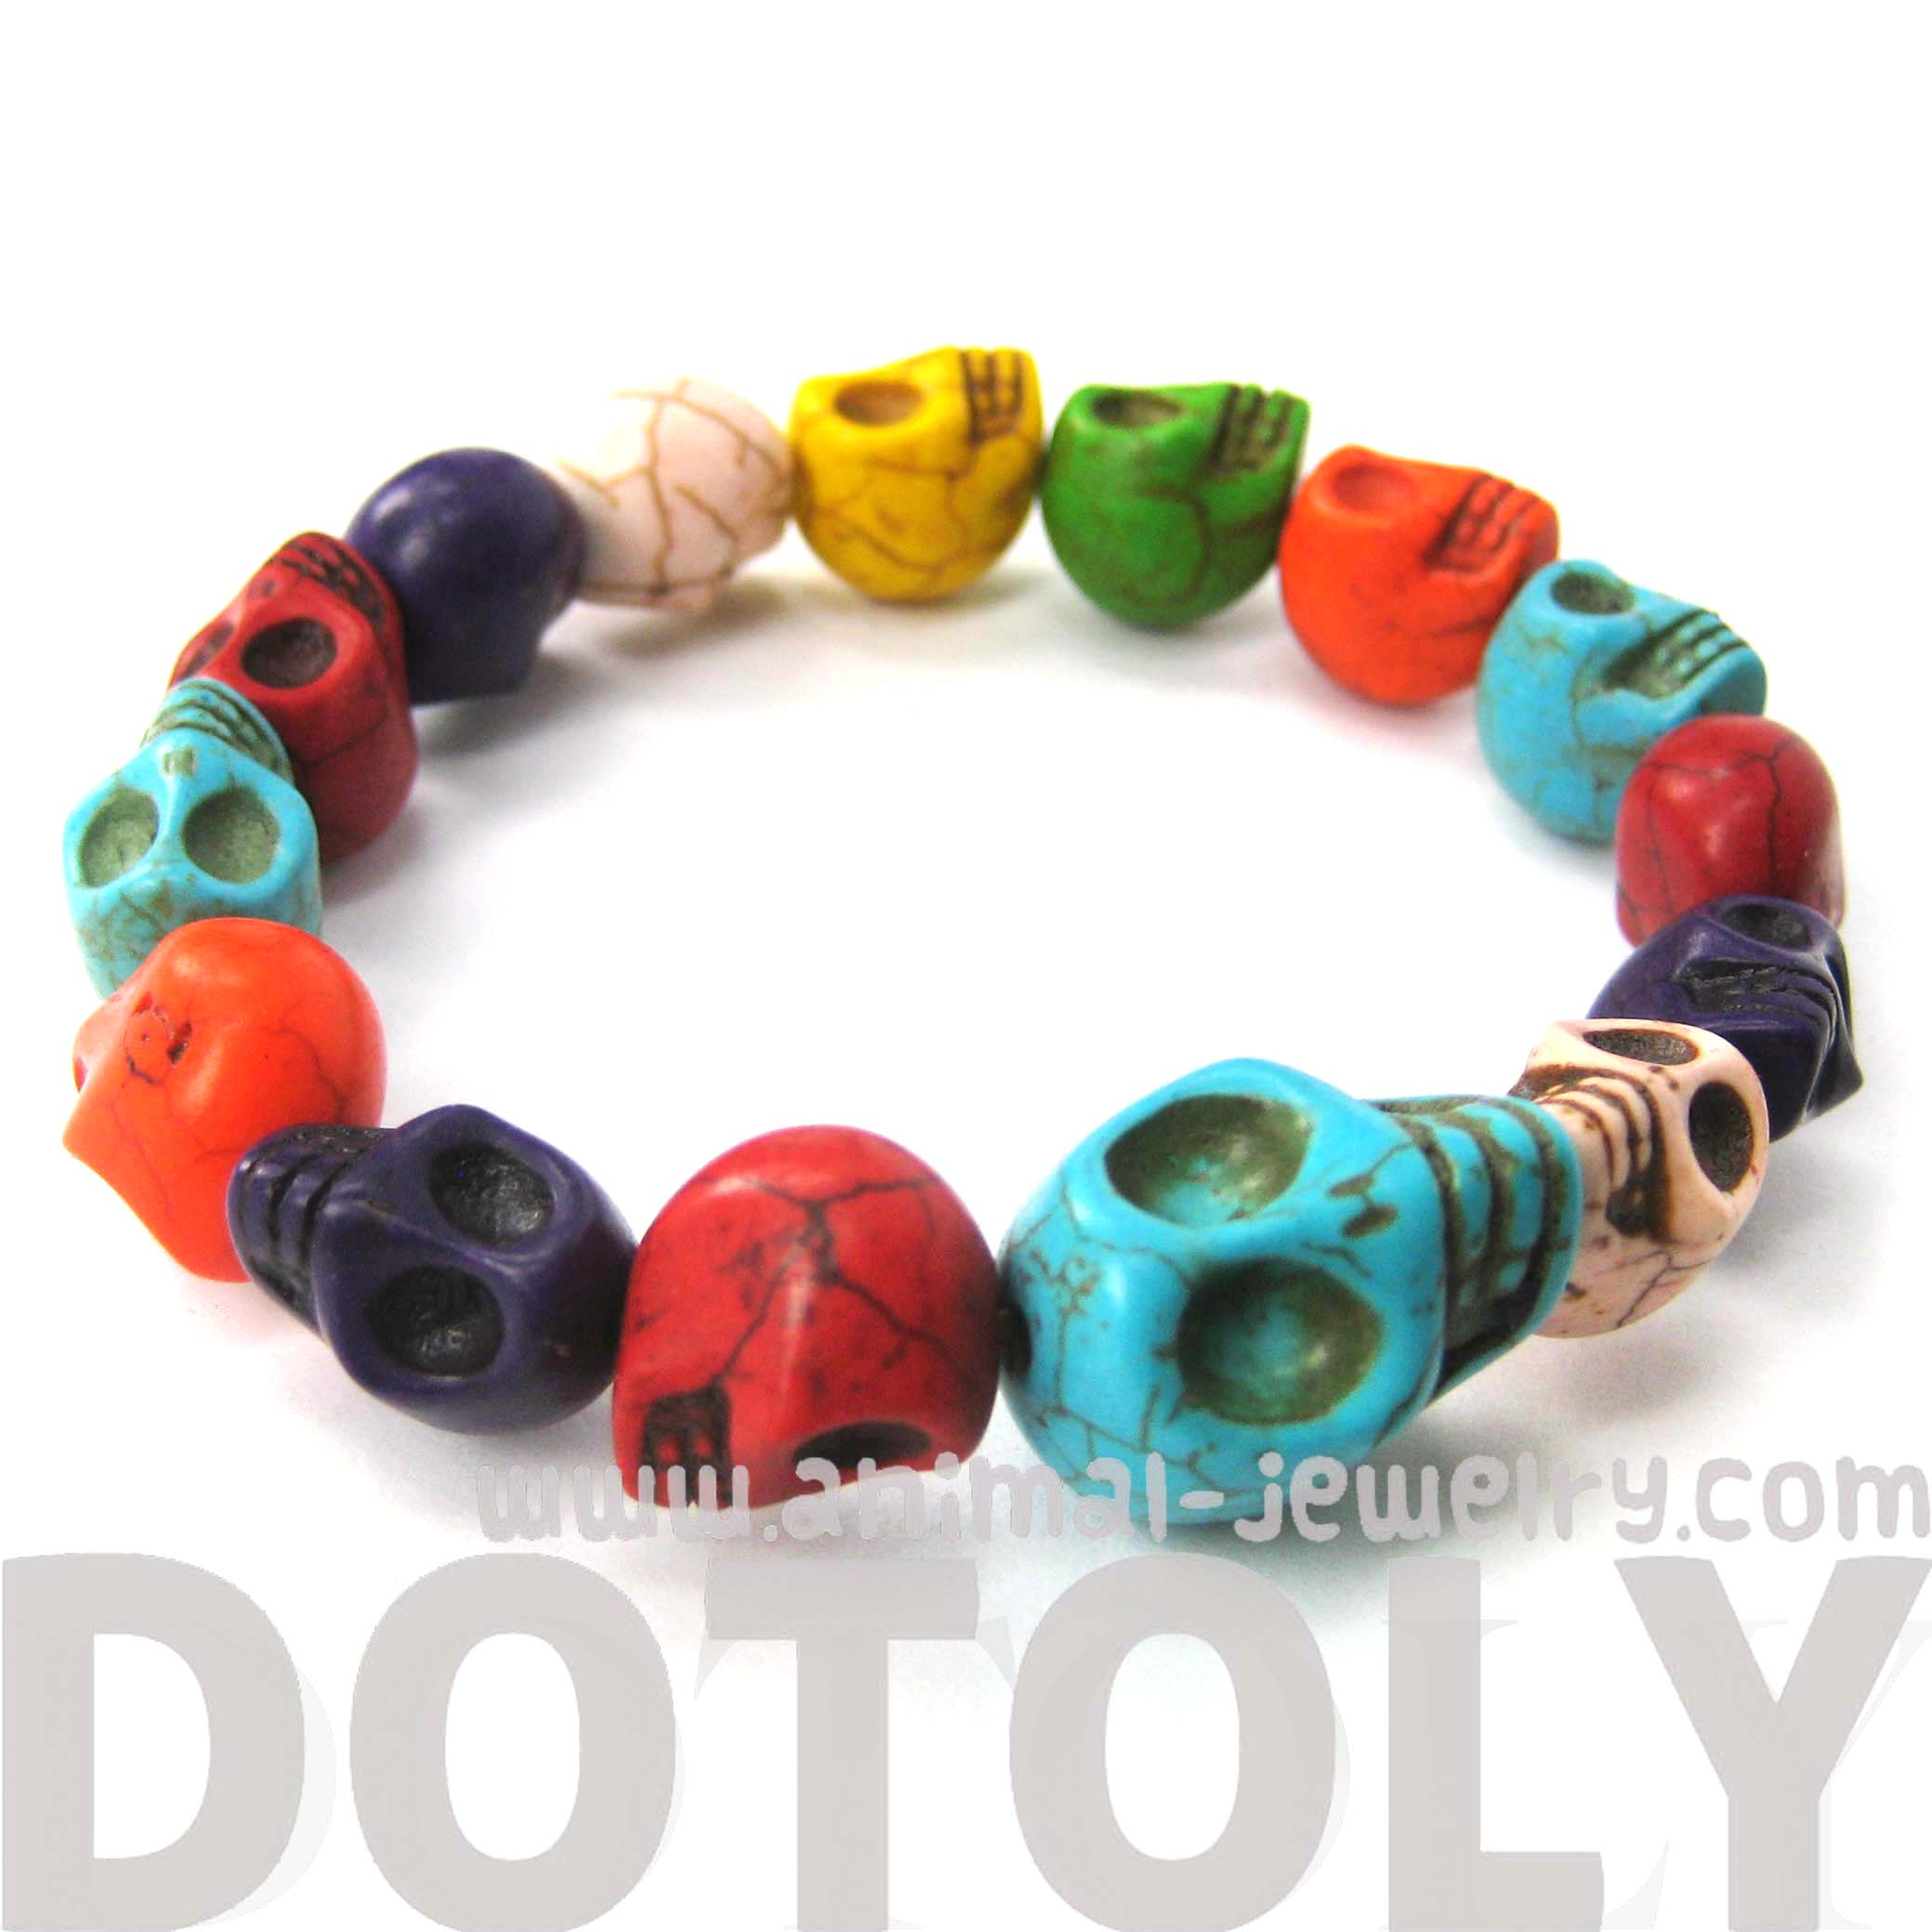 skeleton-agate-bead-rainbow-colored-skull-stretchy-bracelet